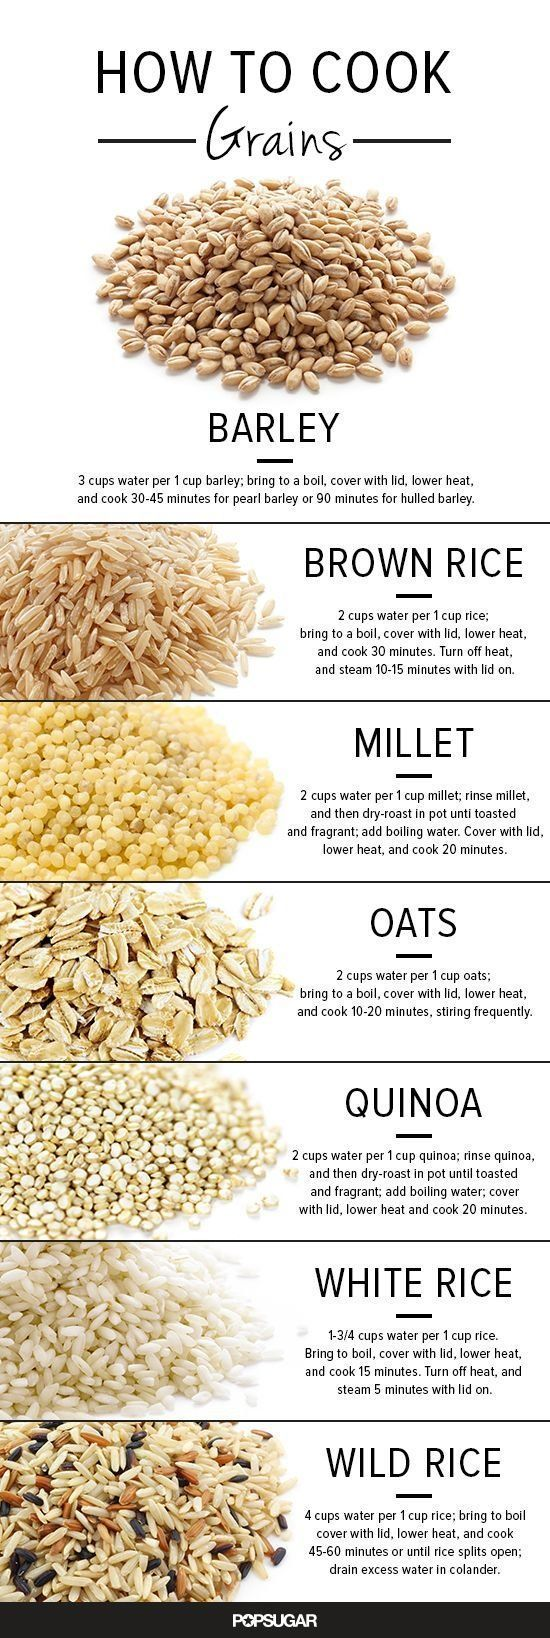 medium resolution of brown rice provides superior nutrition value over white rice